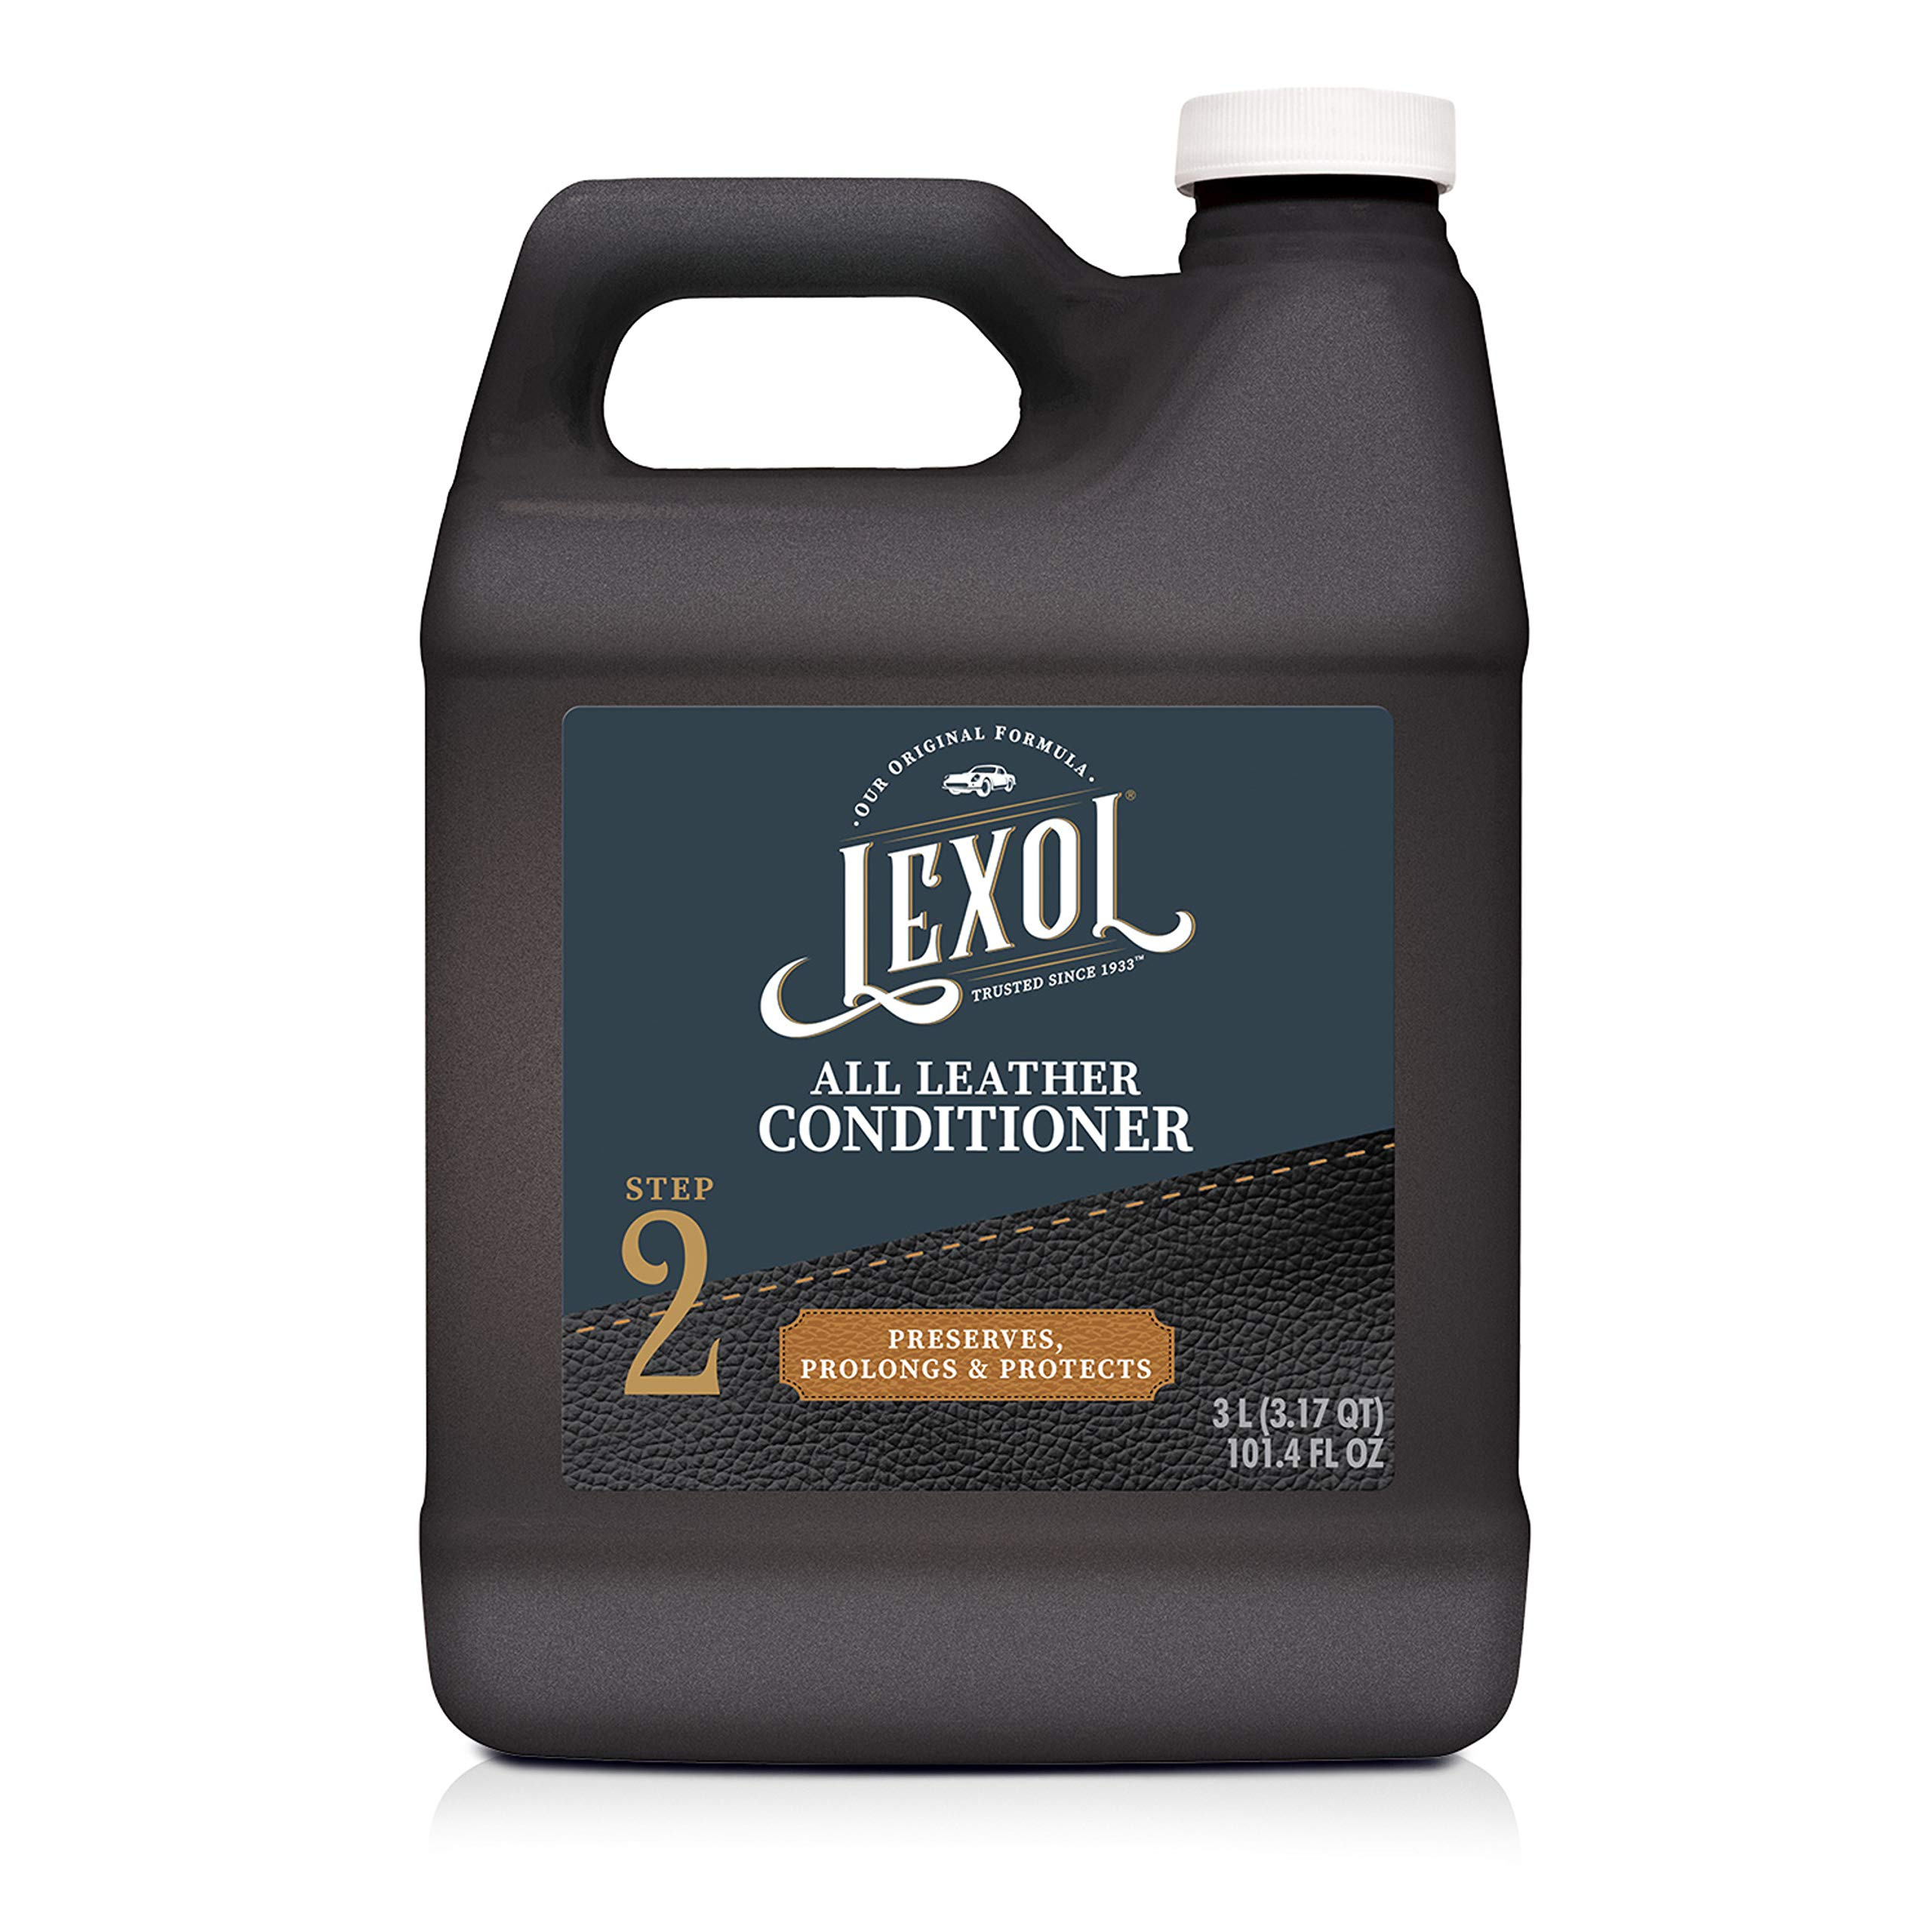 Lexol Leather Conditioner, 3 Liters, Best Cleaner and Conditioning Since 1933 3-Liter for Use on Apparel, Furniture, Auto Interiors, Shoes, Bags and More (E300858100)